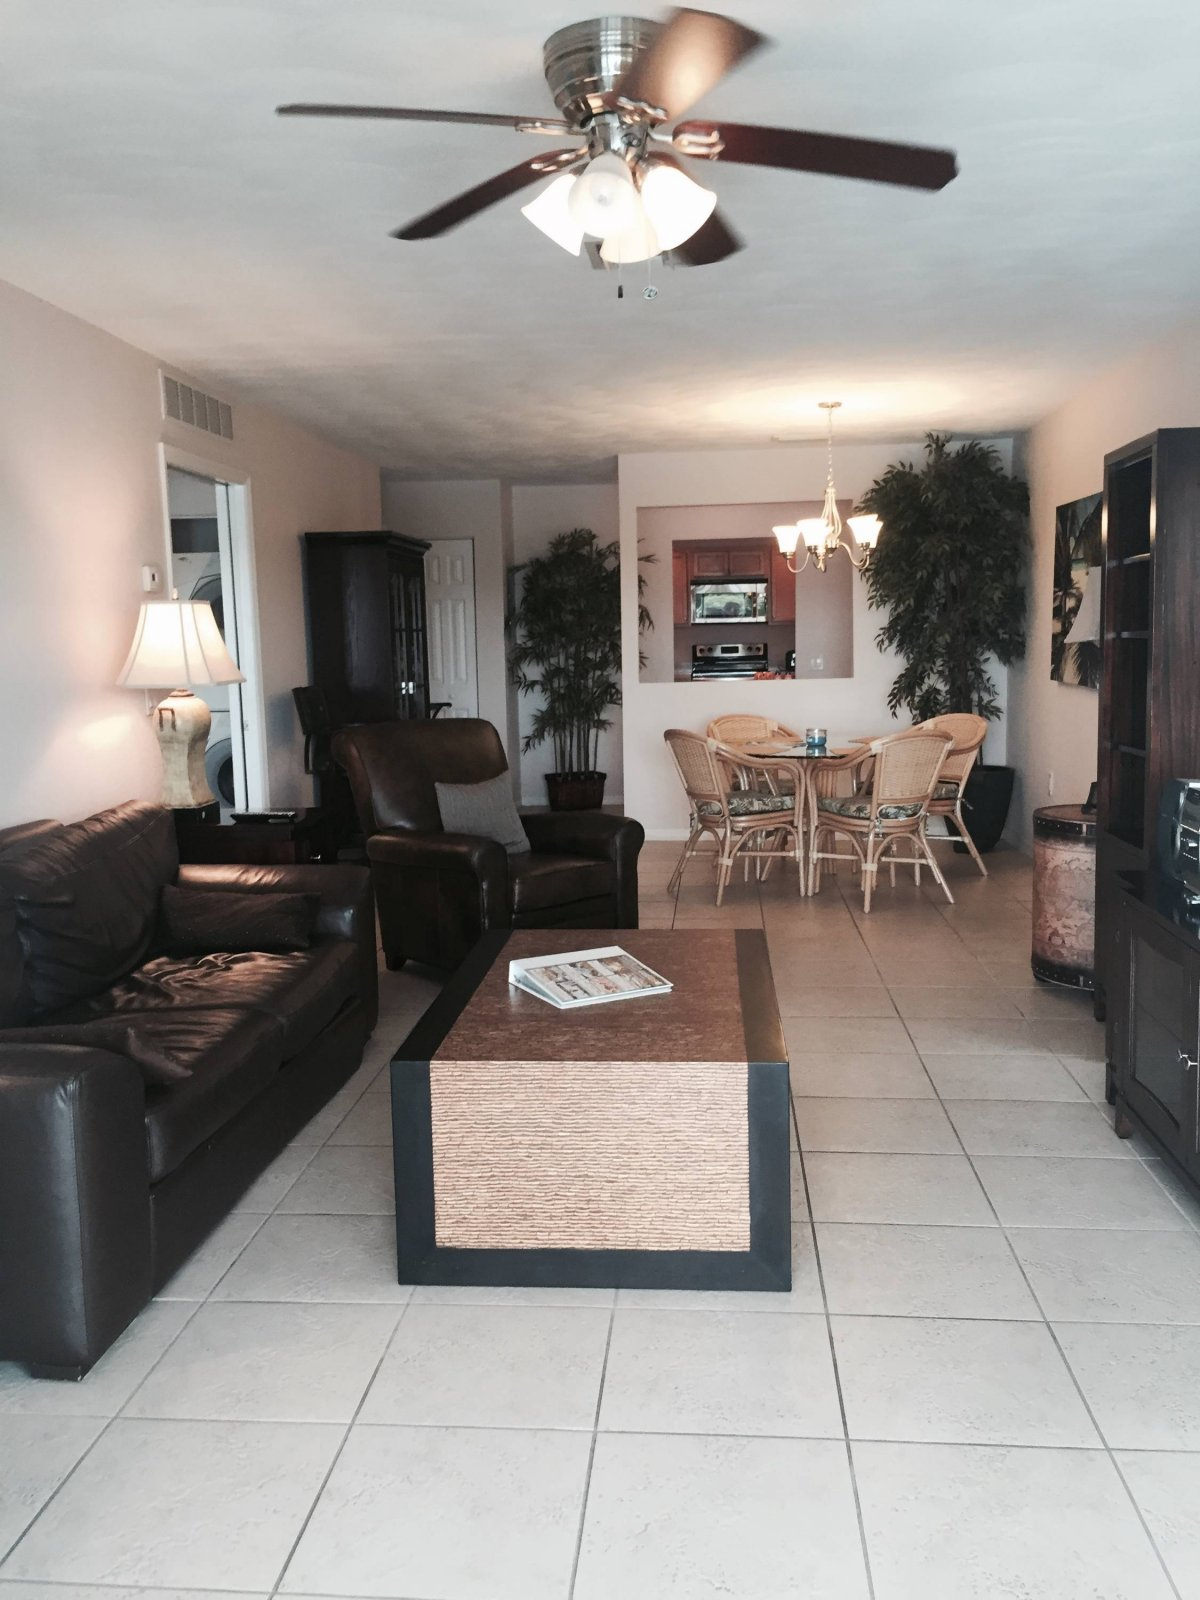 Bedroom Apartment boat house apartment - vacation rentals in florida   carter